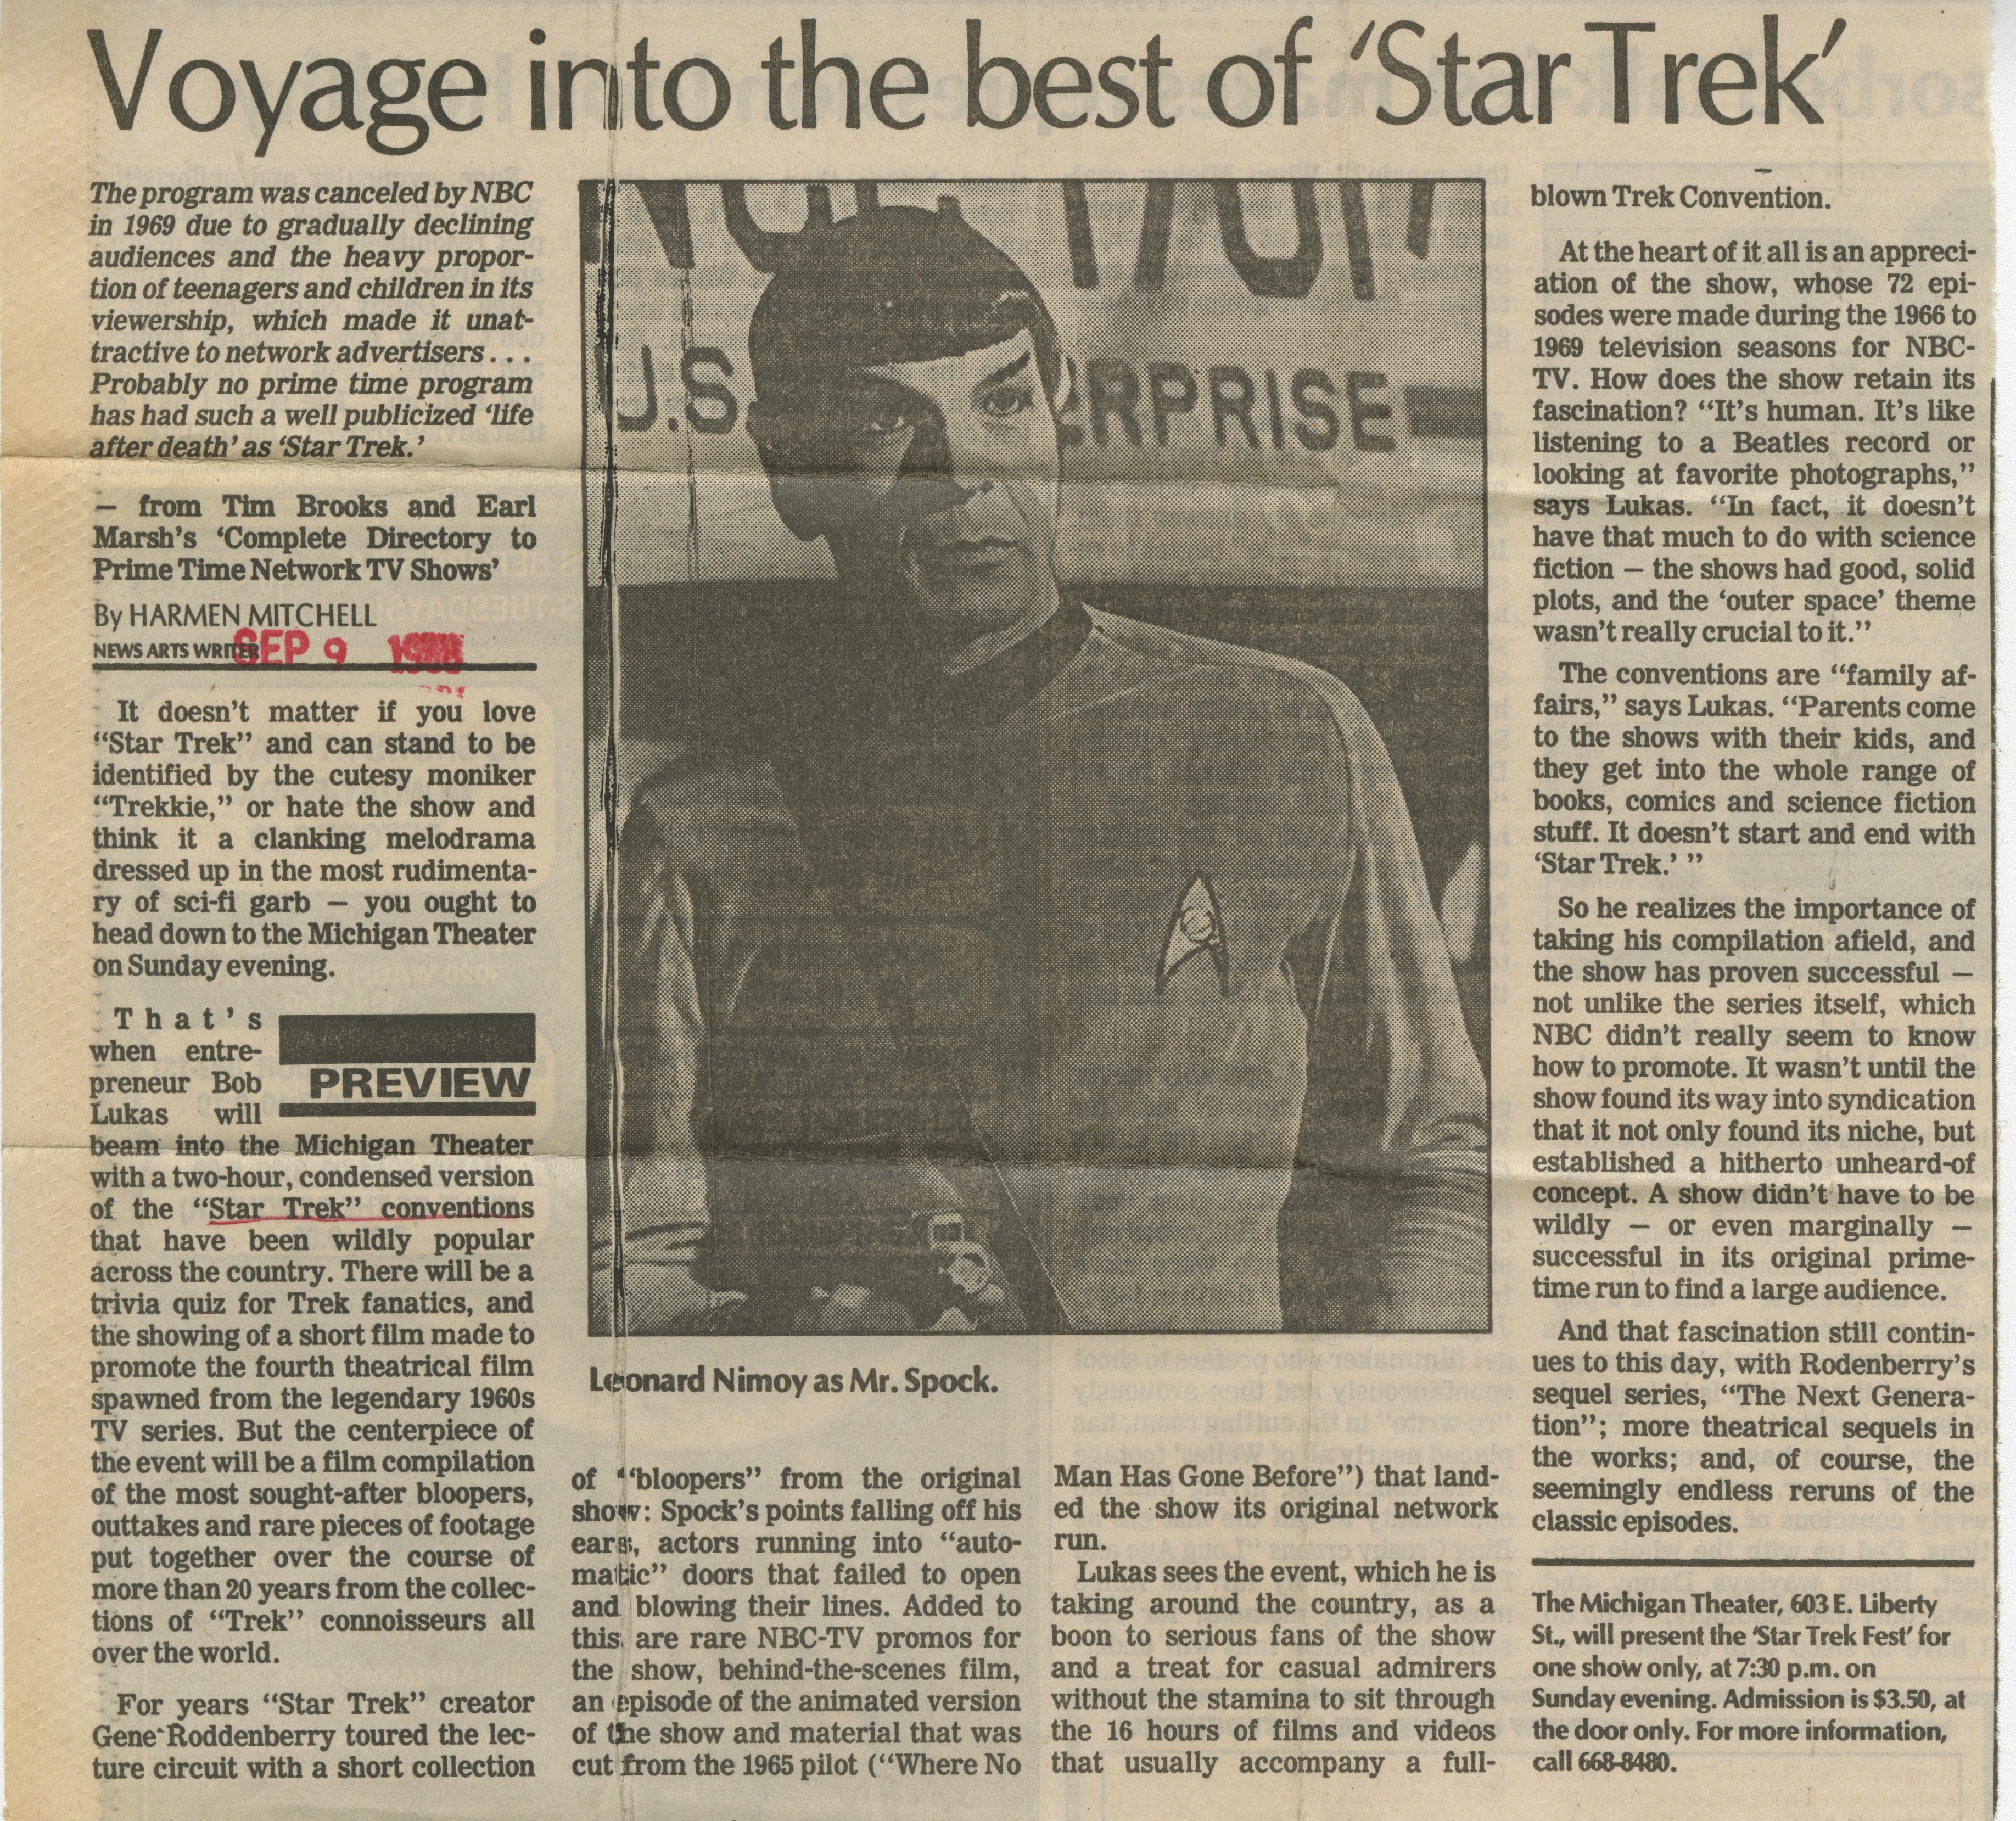 Voyage Into The Best Of 'Star Trek' image